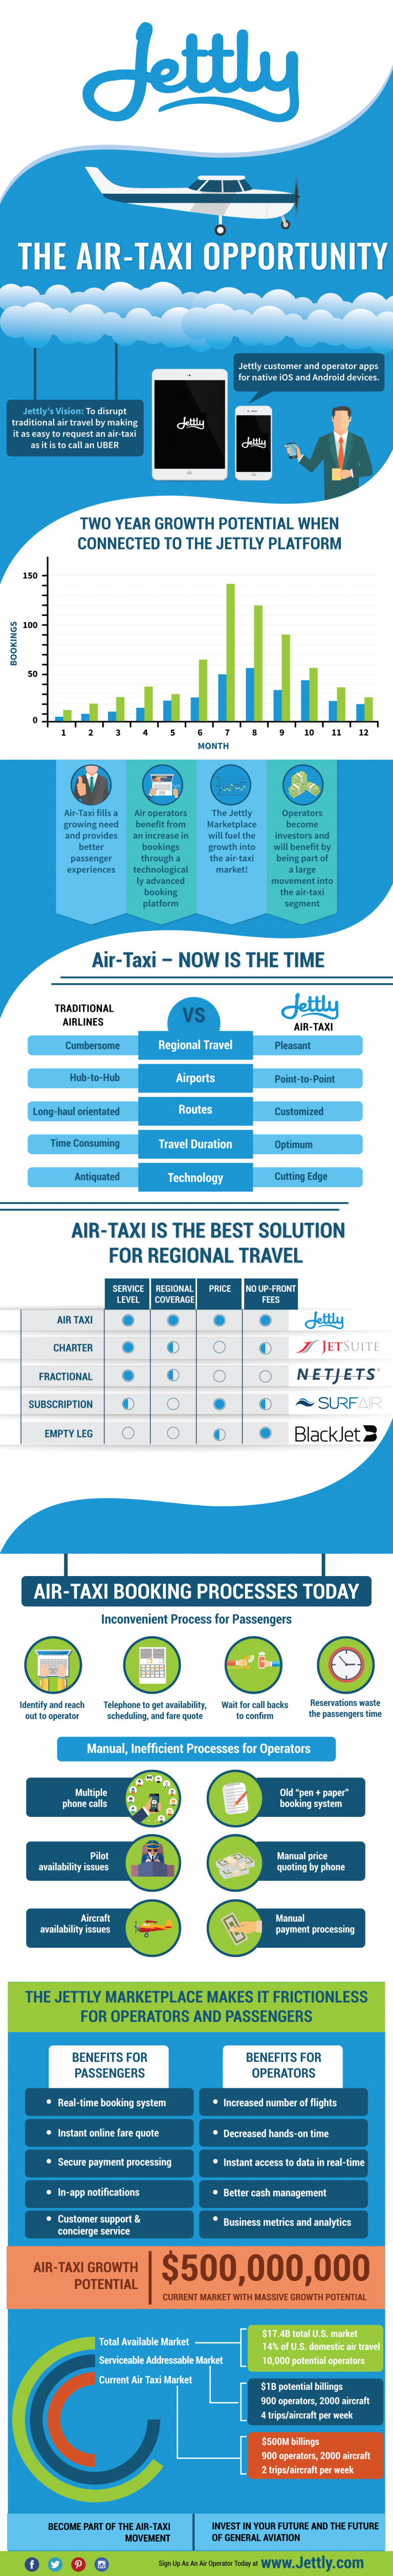 How to Make the Best First Impression - Air Taxi Infographic